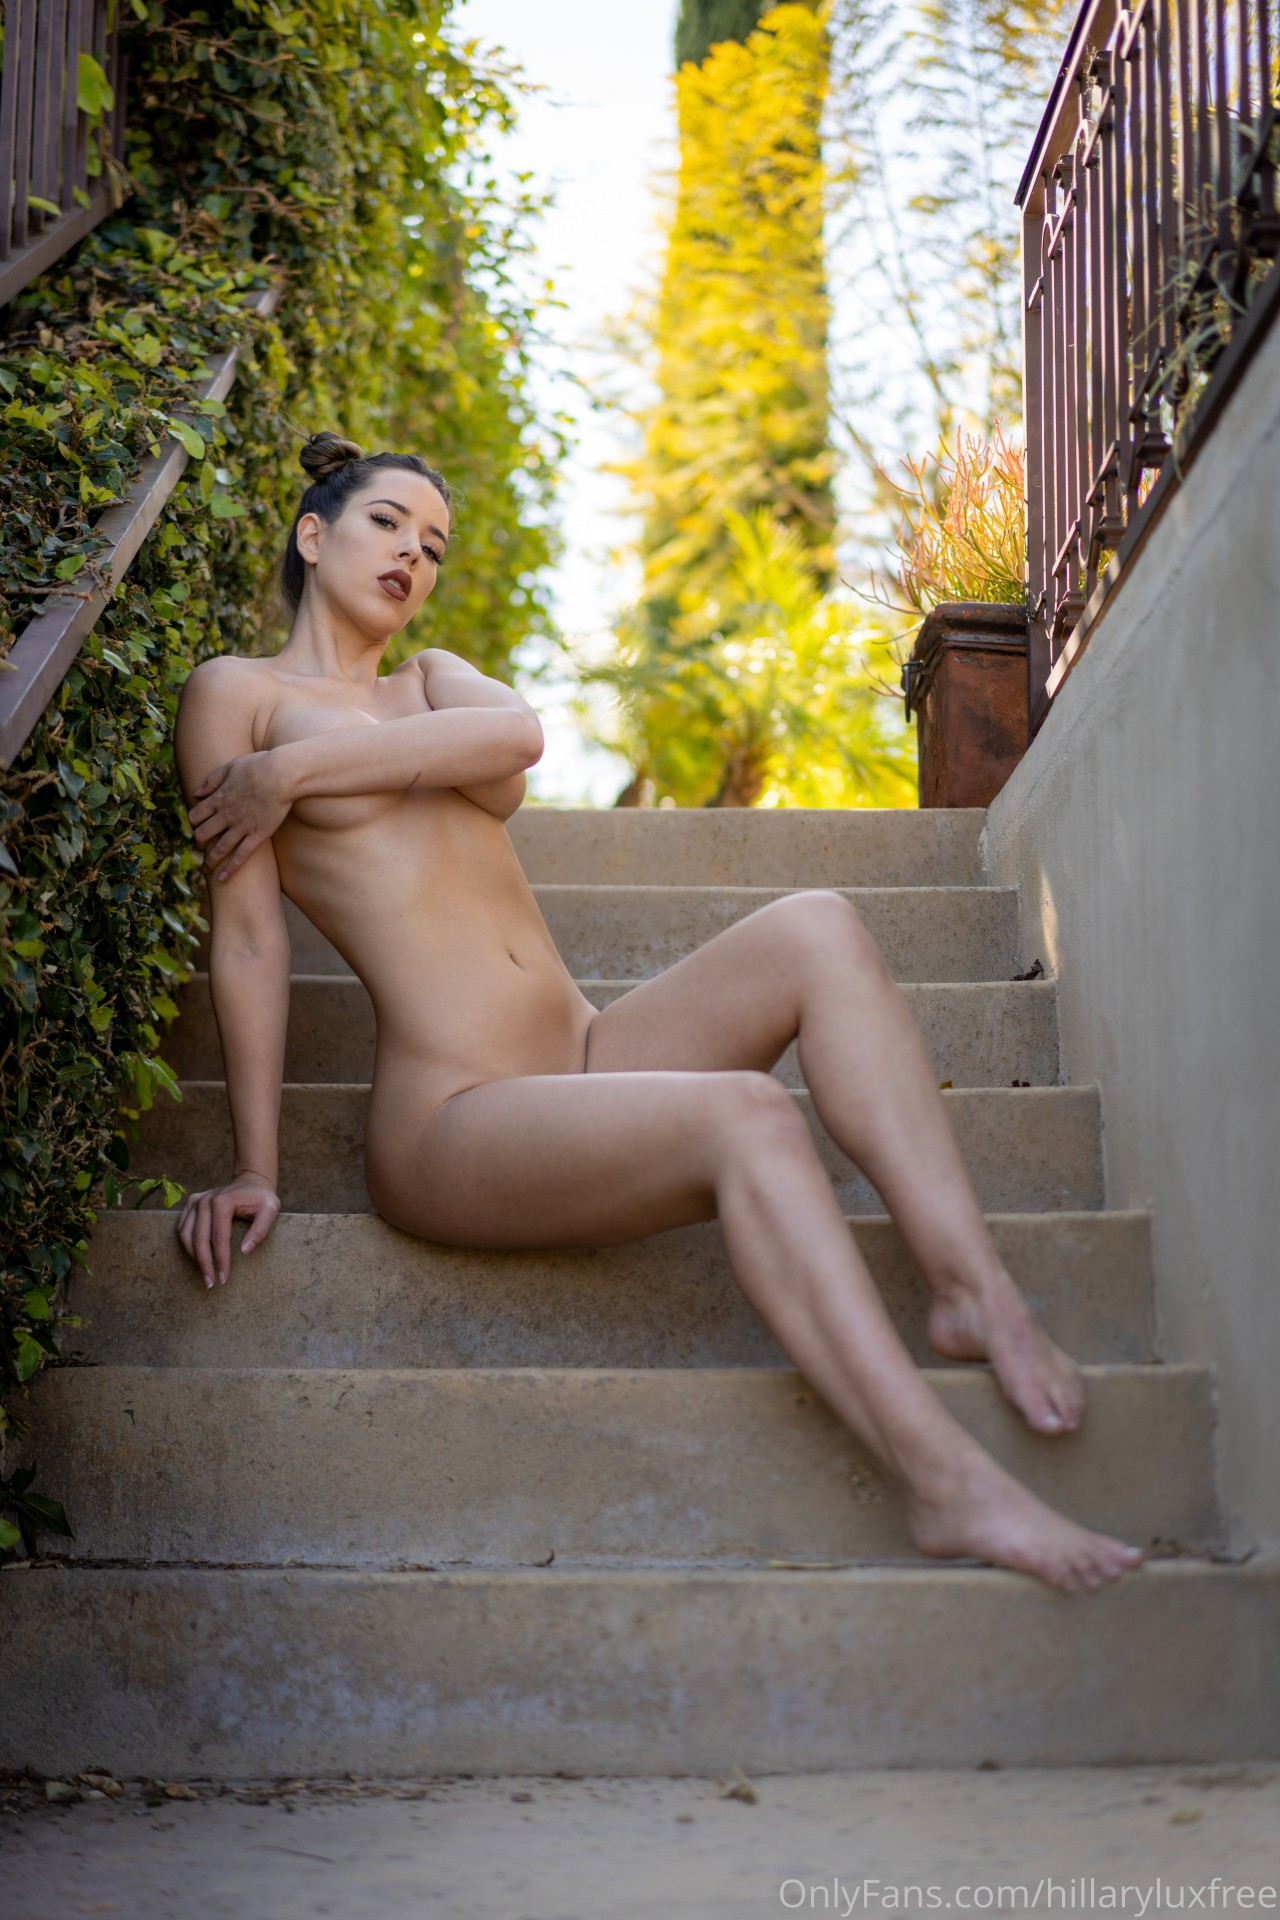 Hillaryluxfree - Hillary Lux 30 09 2020 - onlyfans SiteRip